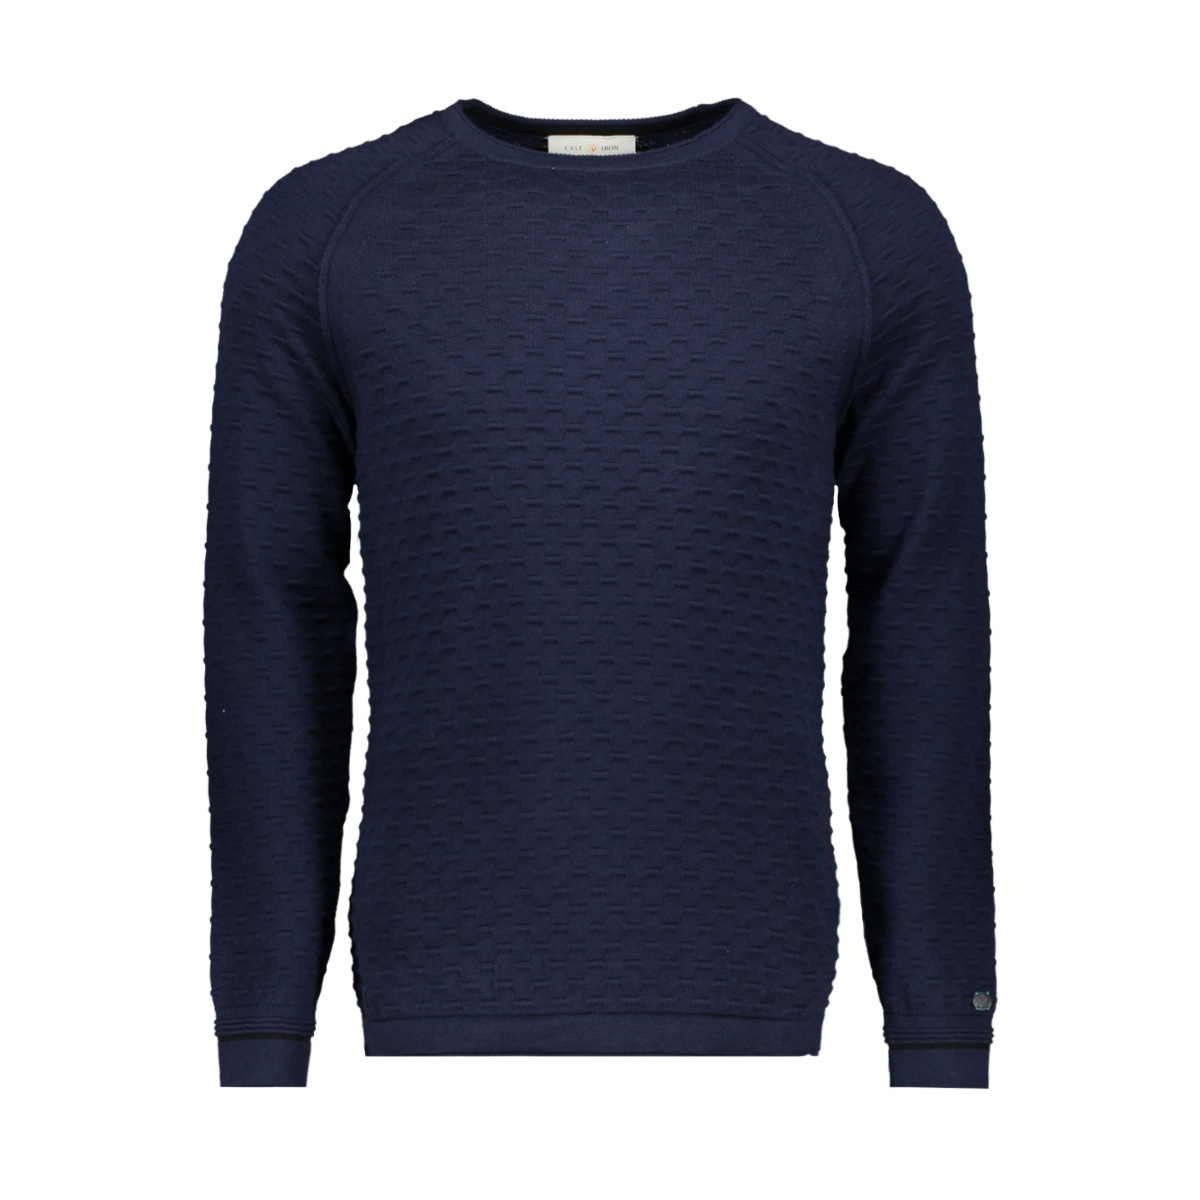 cotton structure crewneck ckw196408 cast iron trui 5118